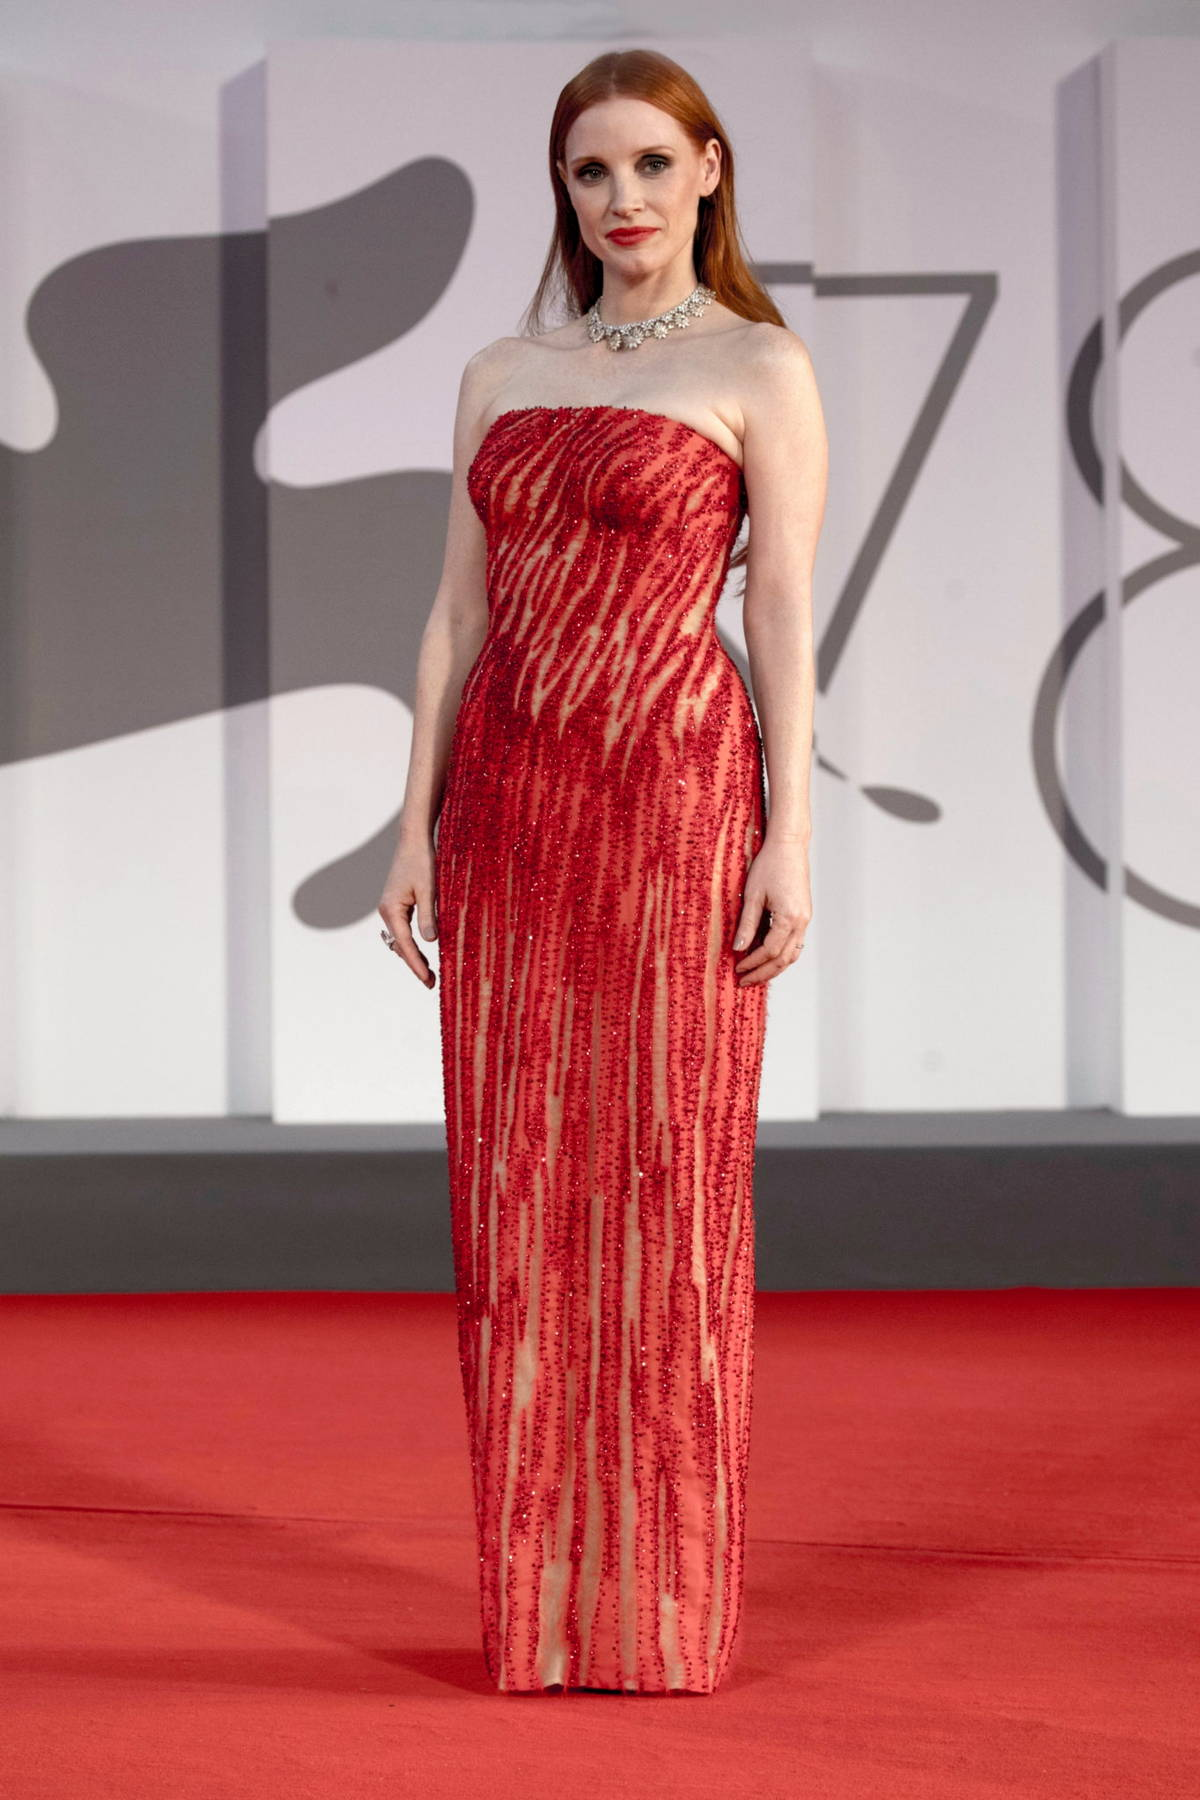 Jessica Chastain attends the Premiere of 'Scenes From A Marriage' during the 78th Venice International Film Festival in Venice, Italy